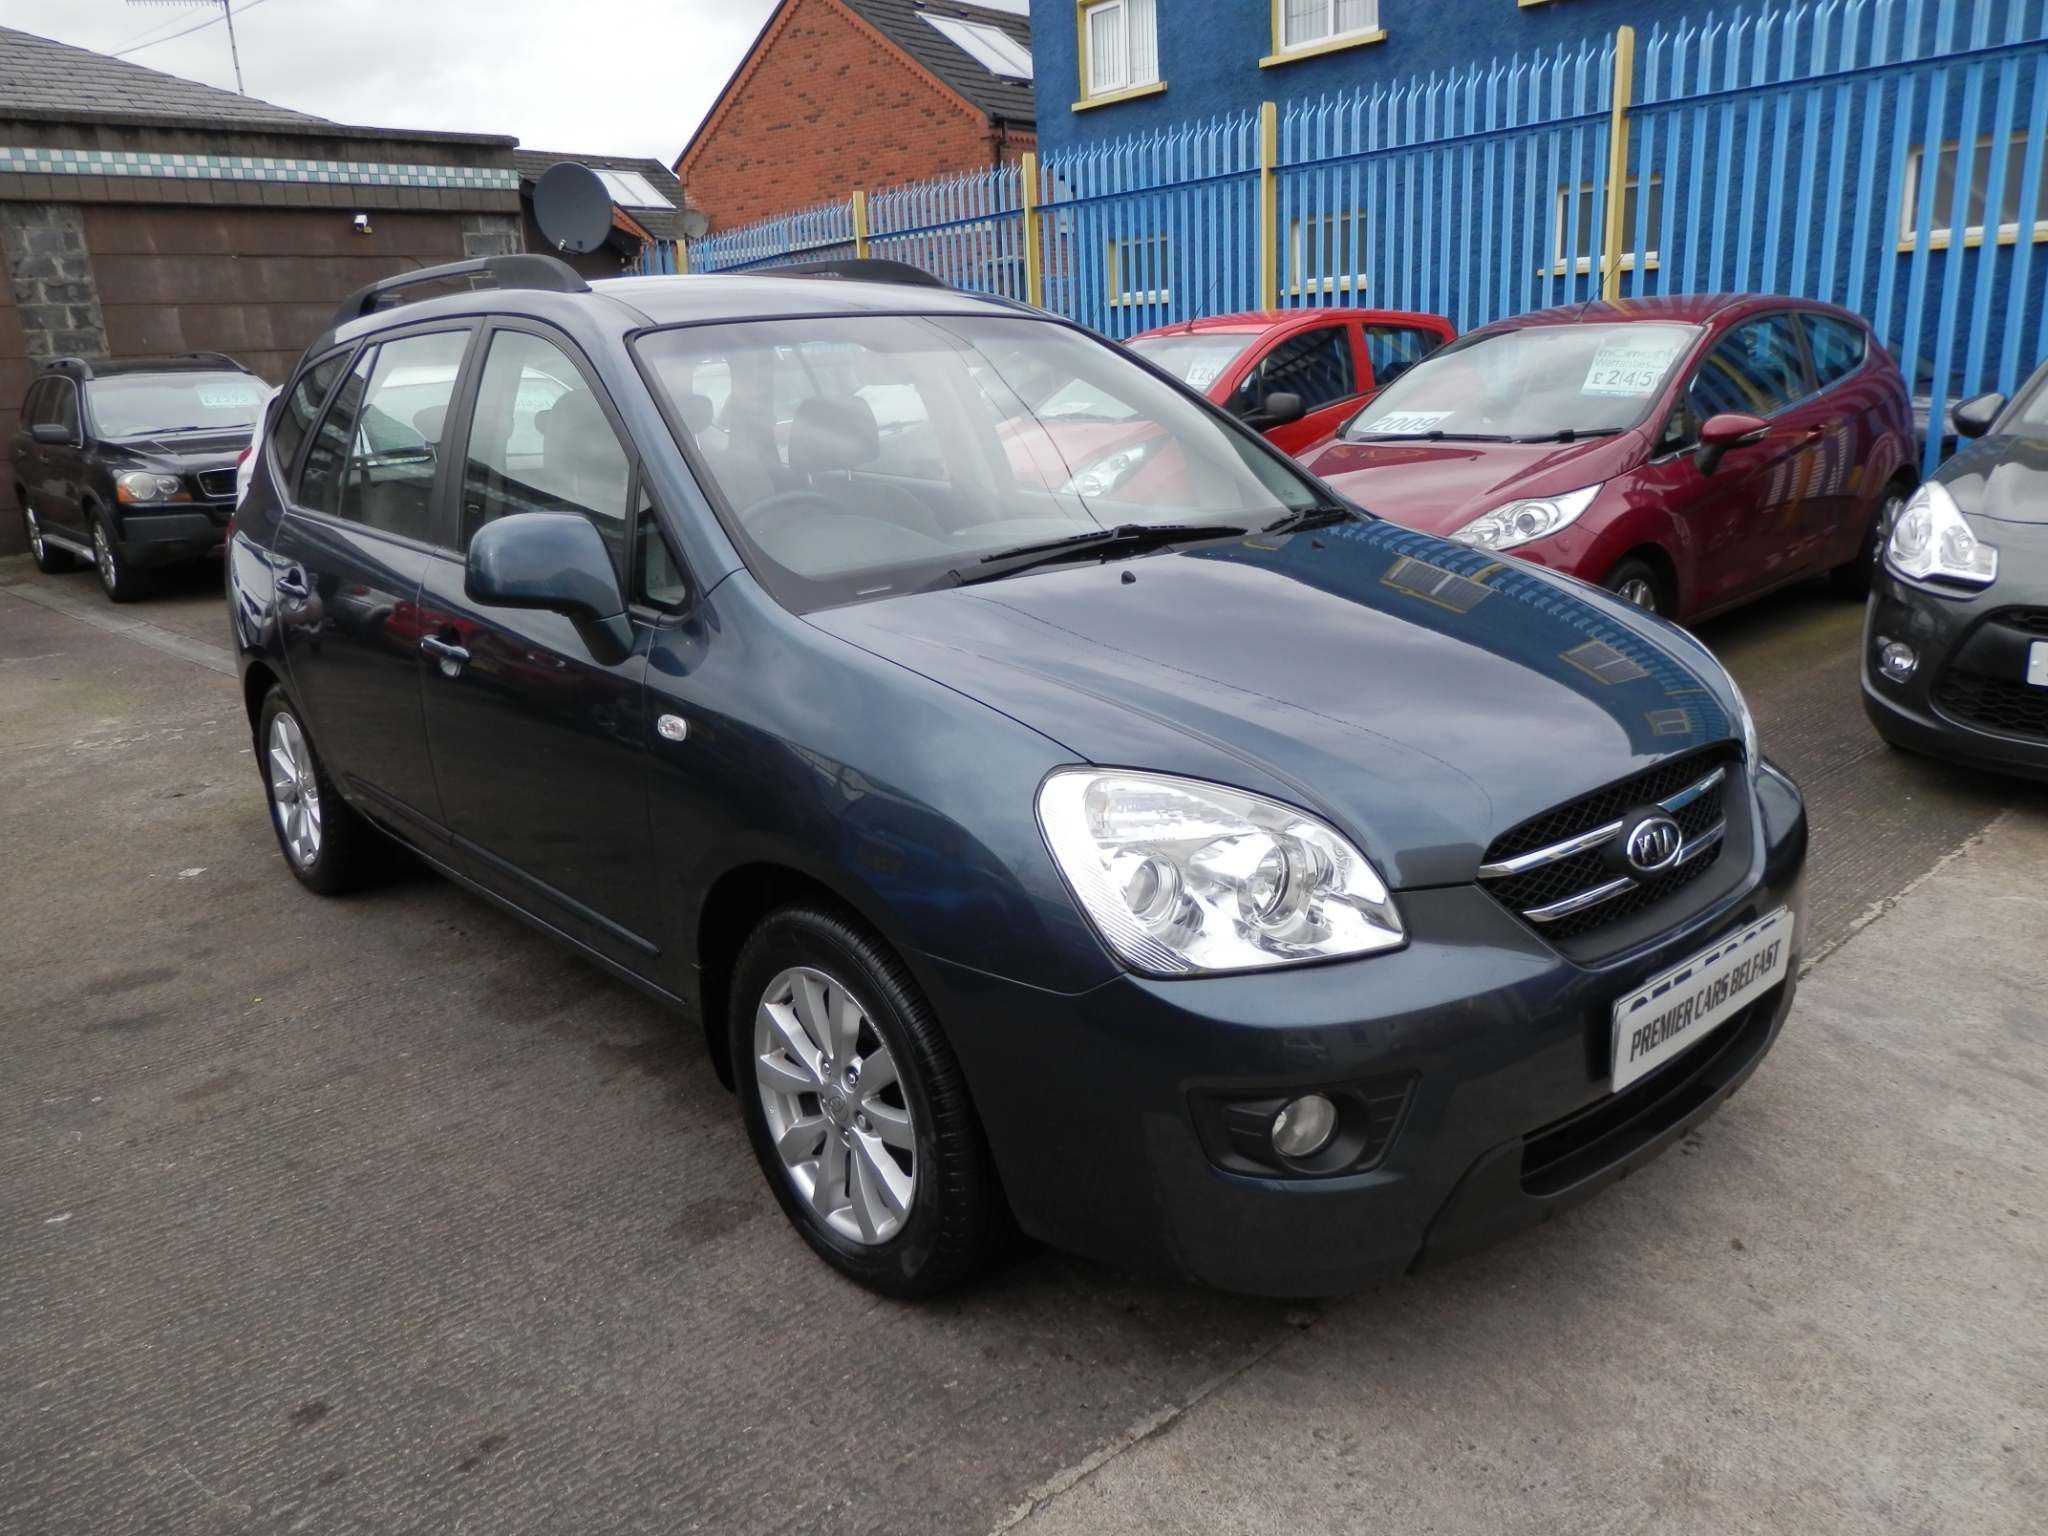 2010 KIA Carens 2.0 CRDi GS  (7 Seats) Diesel Manual  – Premier Cars Belfast Belfast